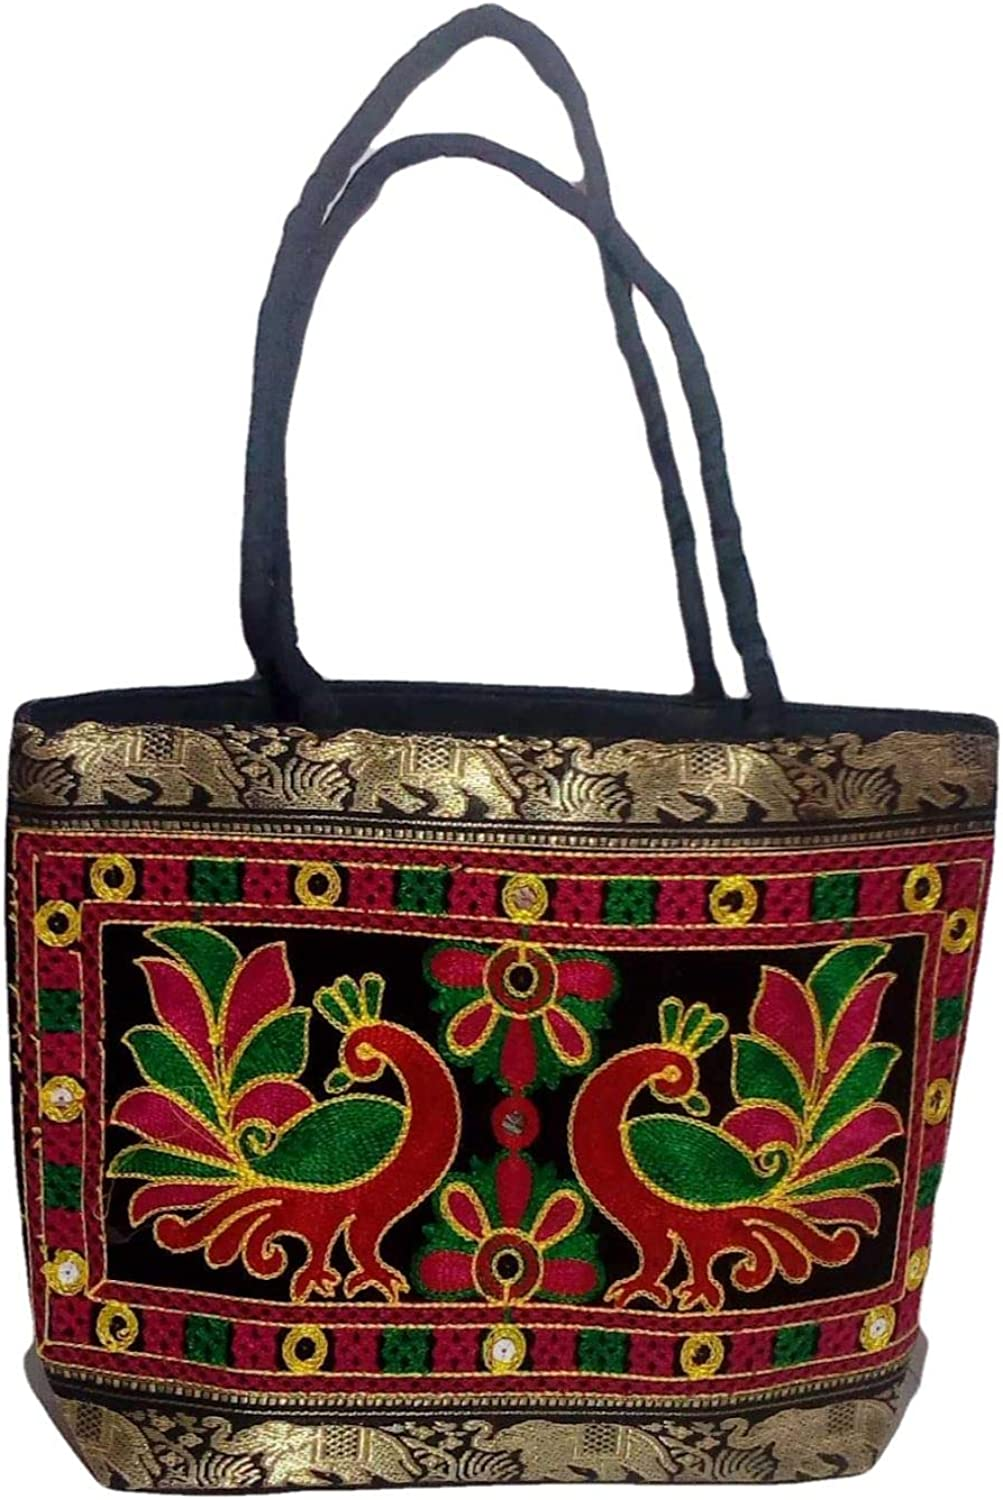 colorful Indian textile bag Tote bag with leather handles embroidered cotton purse Gift for fiancee Everyday market bag for happy hippie